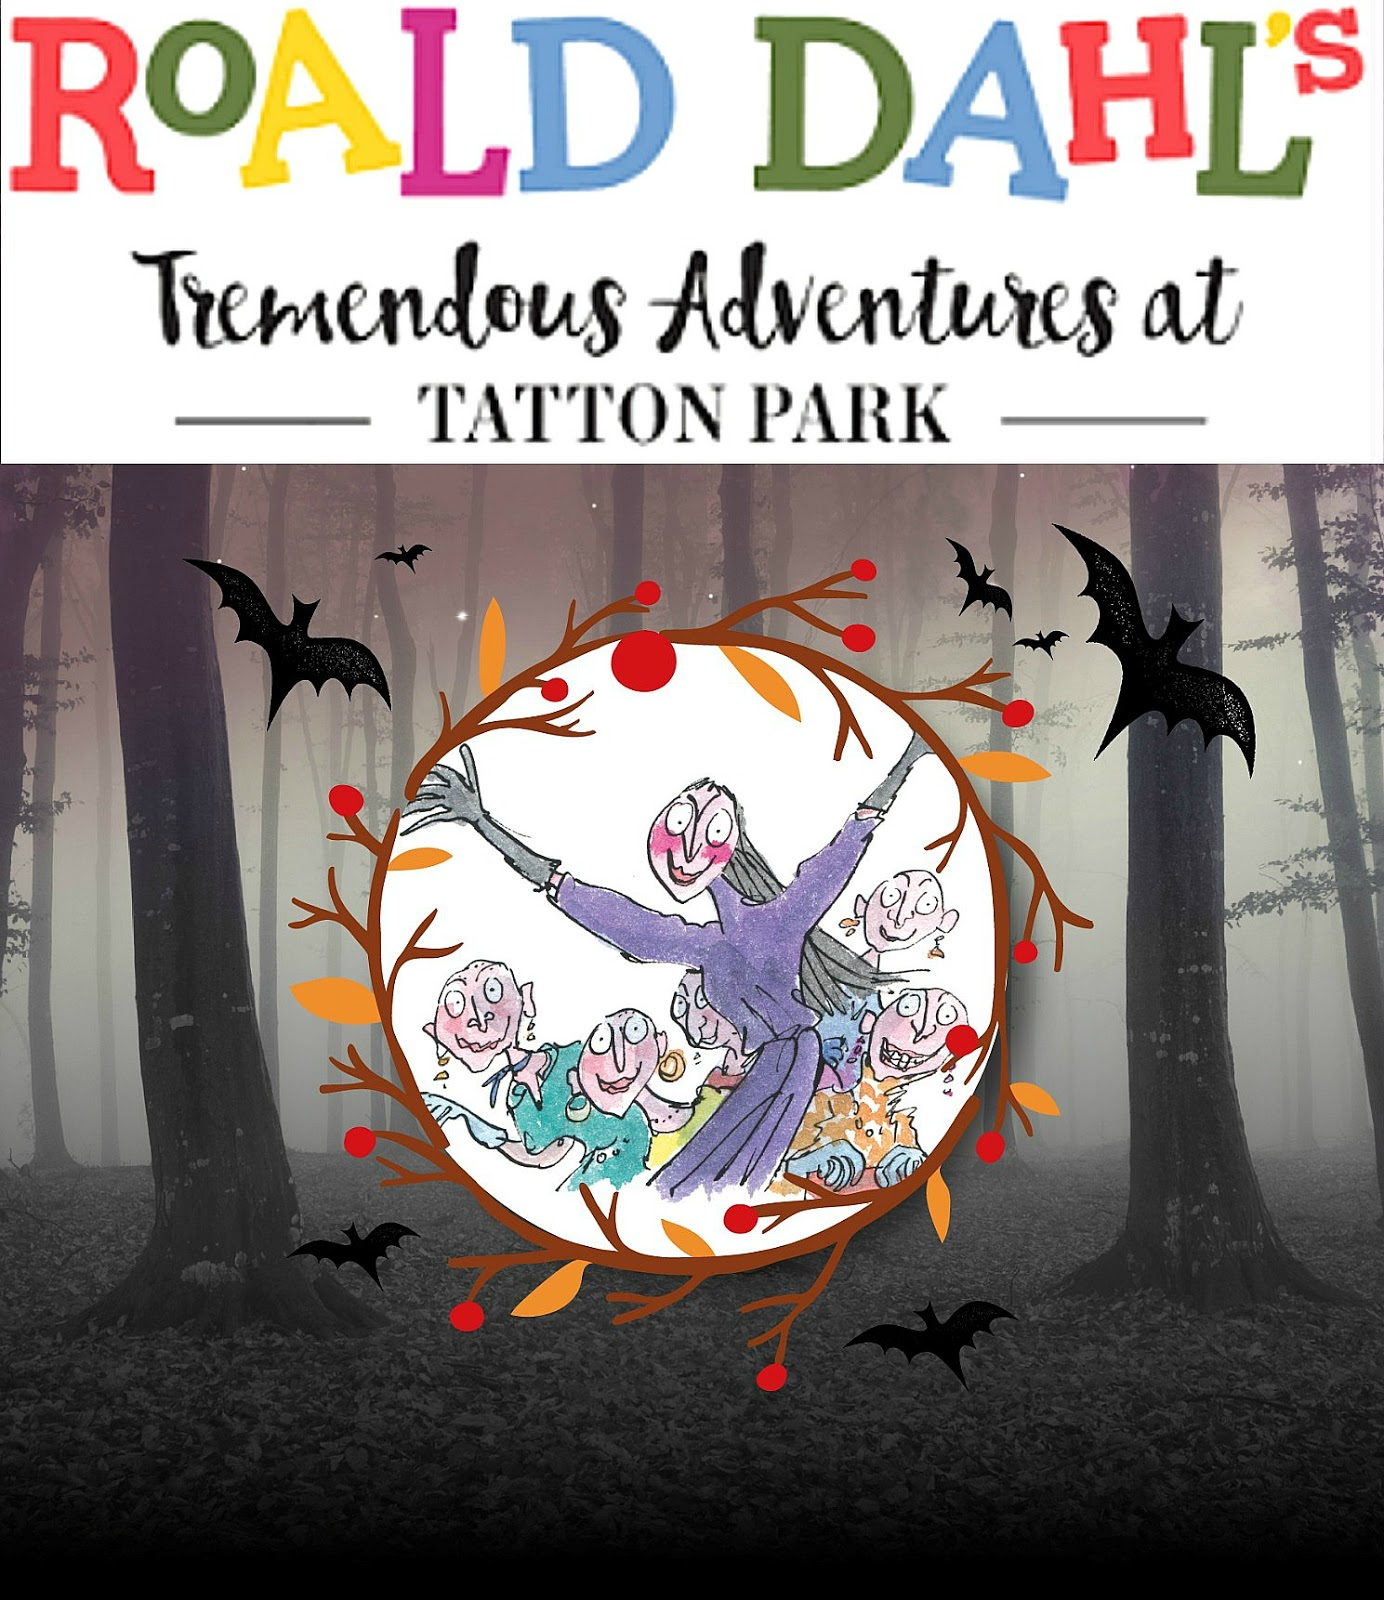 Roald Dahl The Witches Taking Over Tatton Park This Halloween